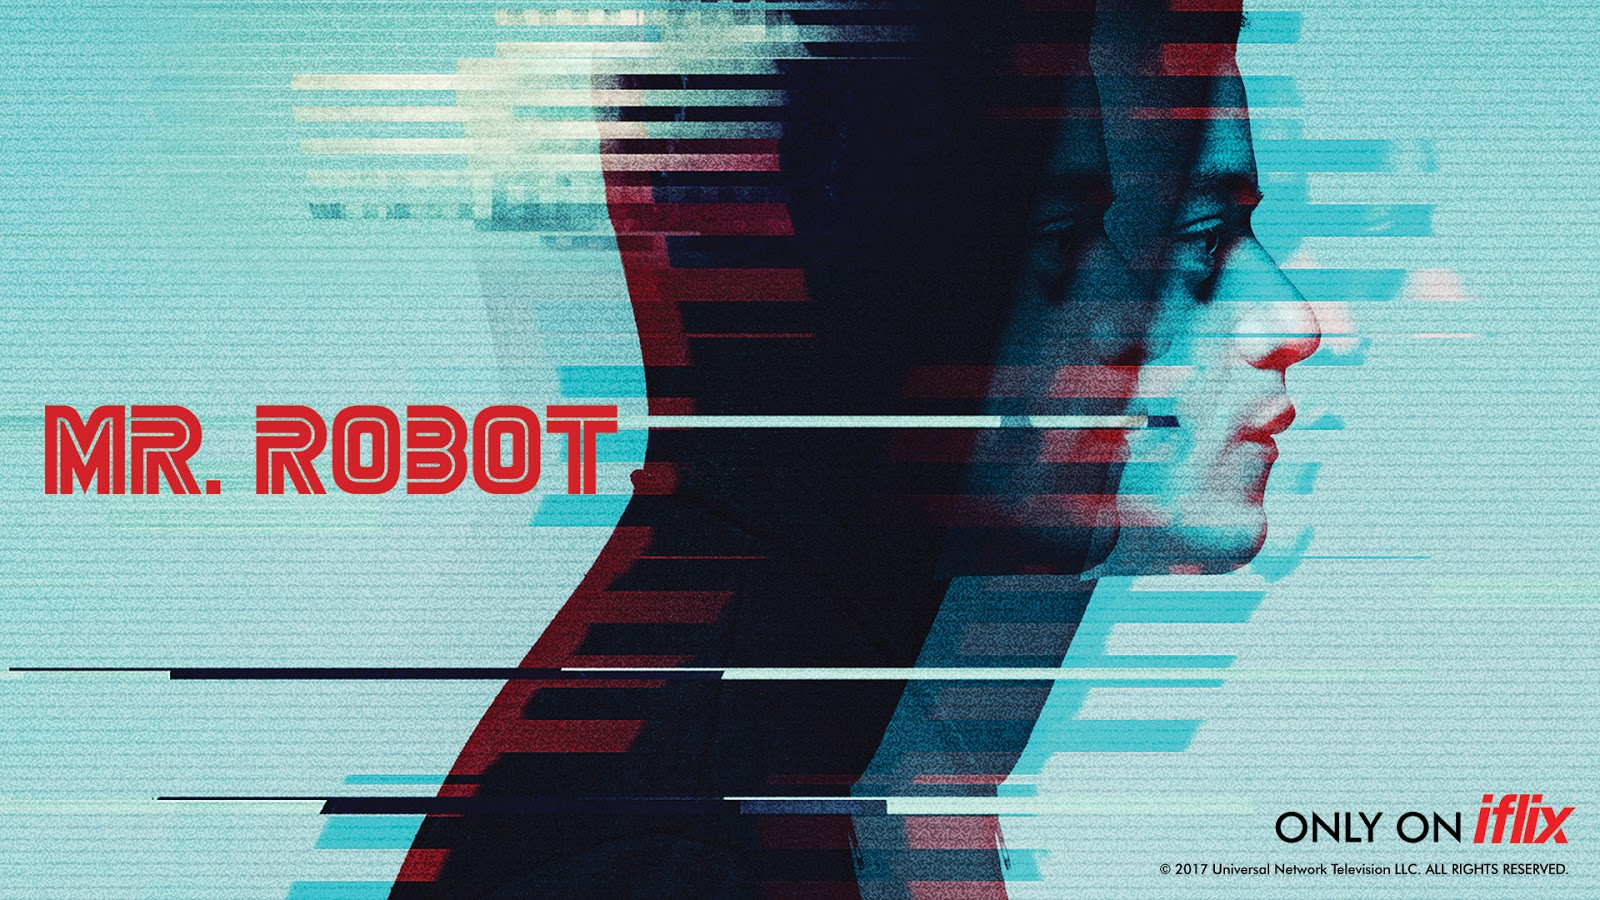 Mr. Robot Season 3 premiers exclusively on iflix